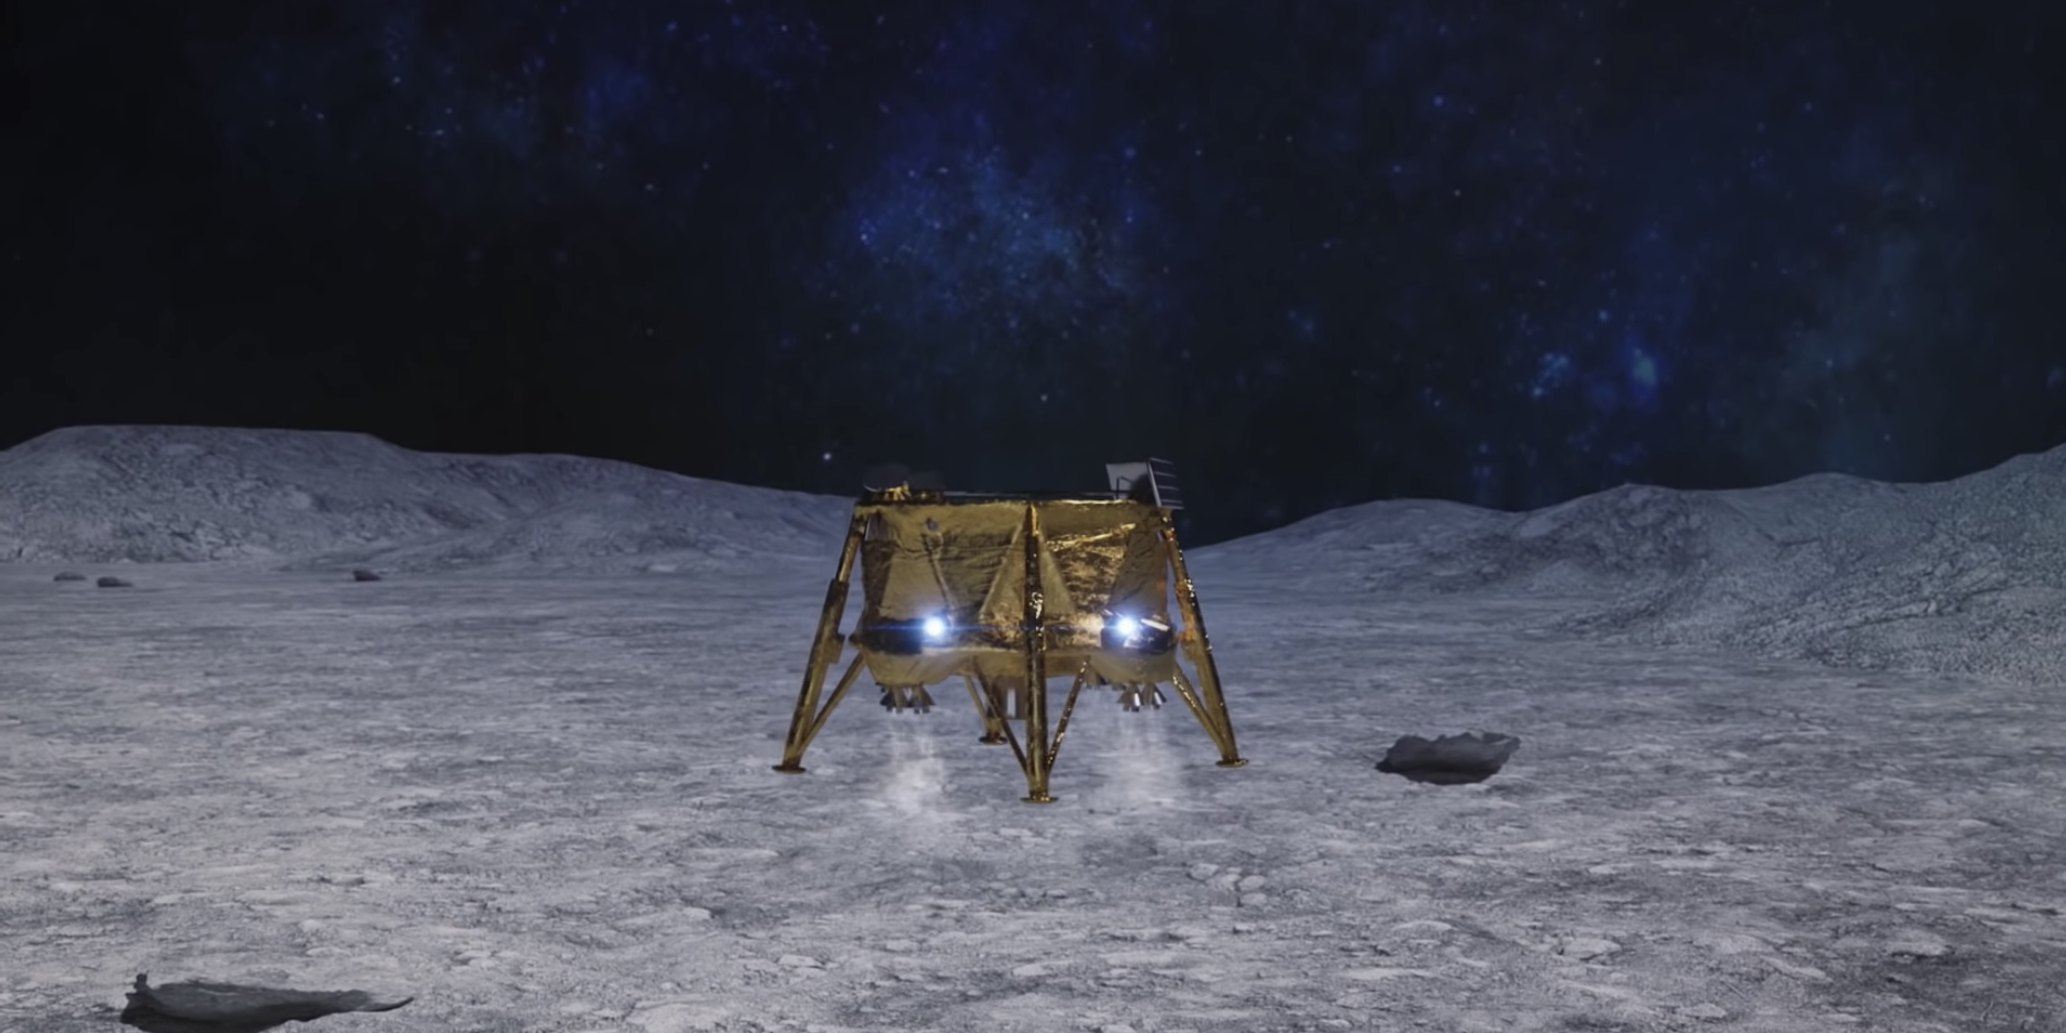 SpaceIL Will Try Again After Last Week's Failed Moon Landing